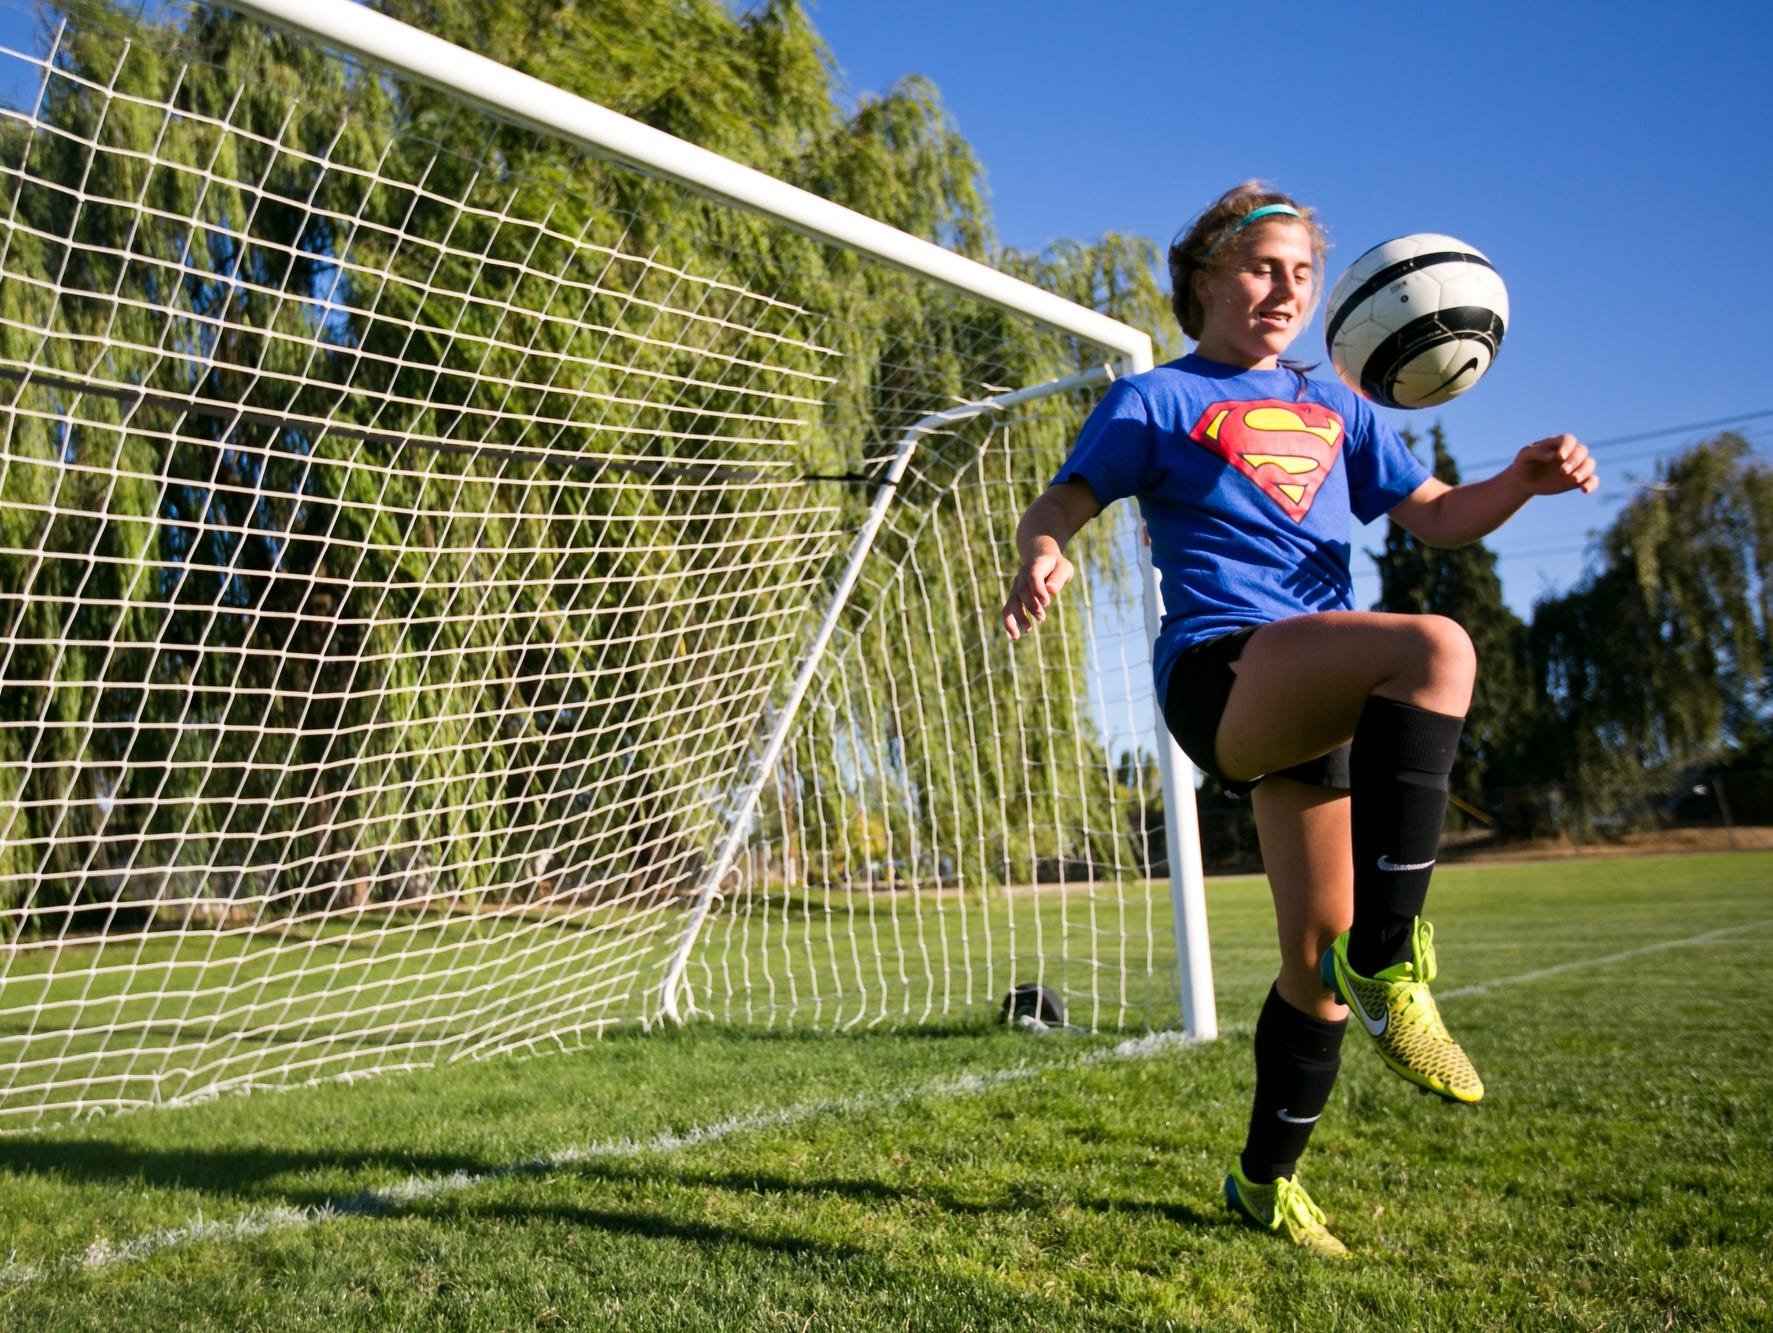 Defensive center midfielder Emily Collier juggles the ball at a practice for Blanchet Catholic School on Monday, Sept. 12, 2016.